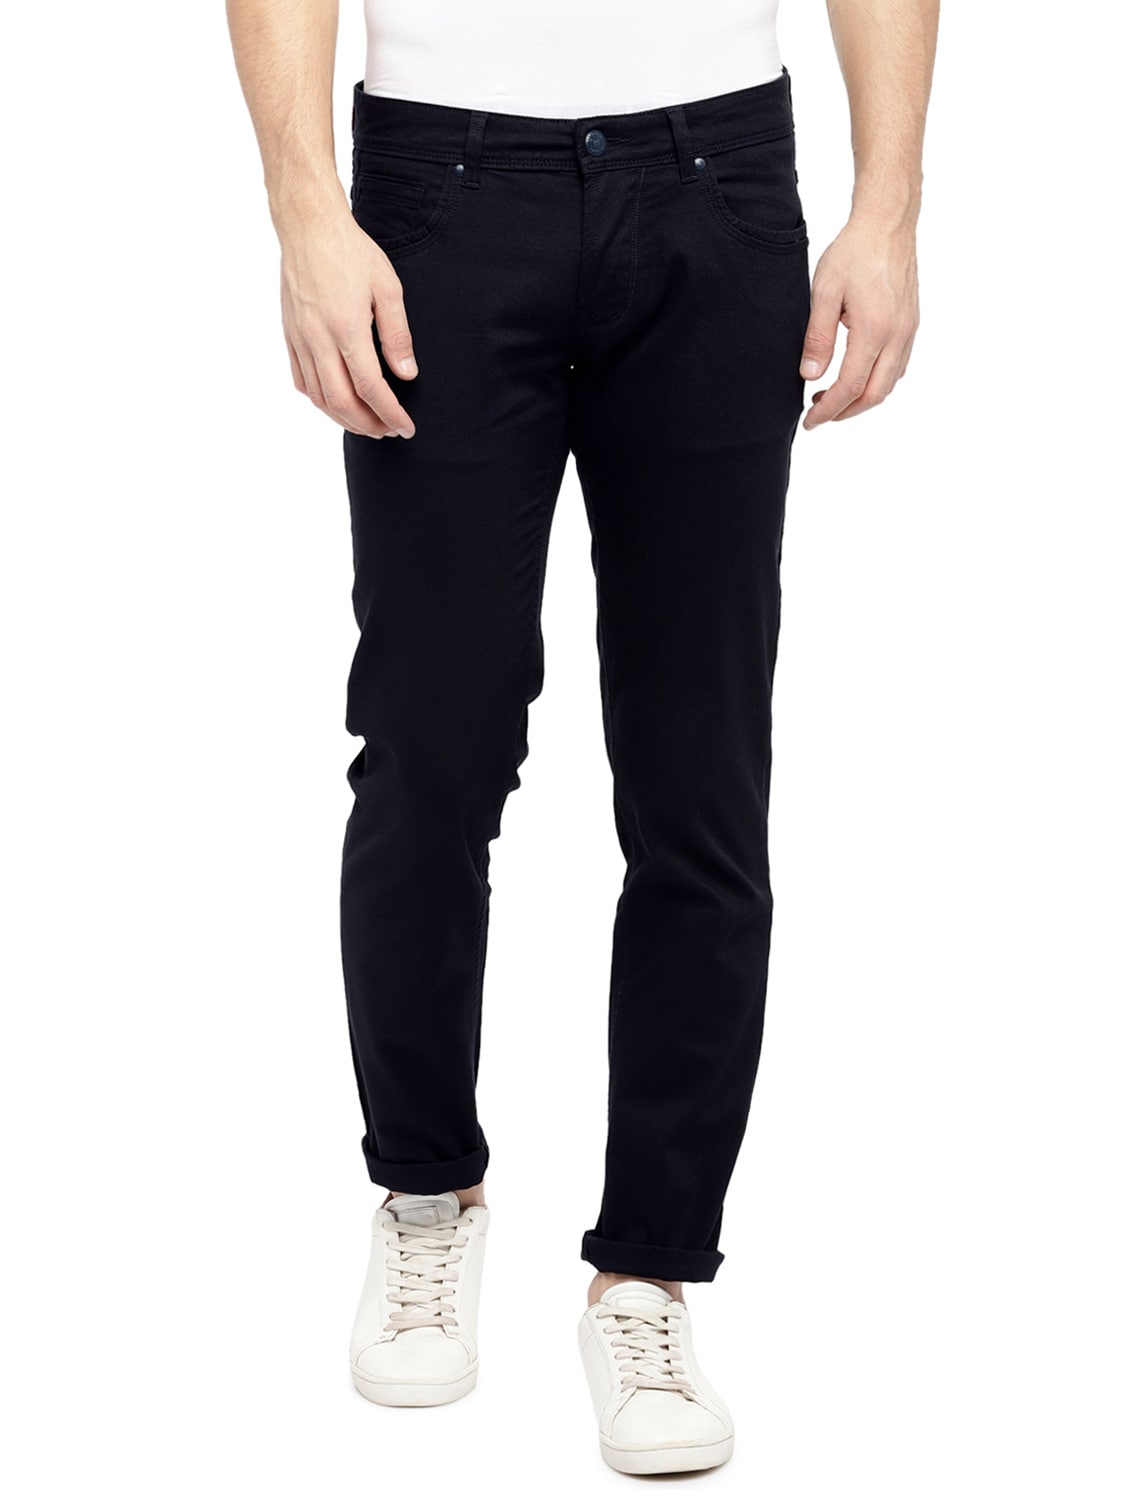 270390c2 Buy Blue Cotton Plain Jeans for Men from Lawman Pg3 for ₹1439 at 40% off |  2019 Limeroad.com